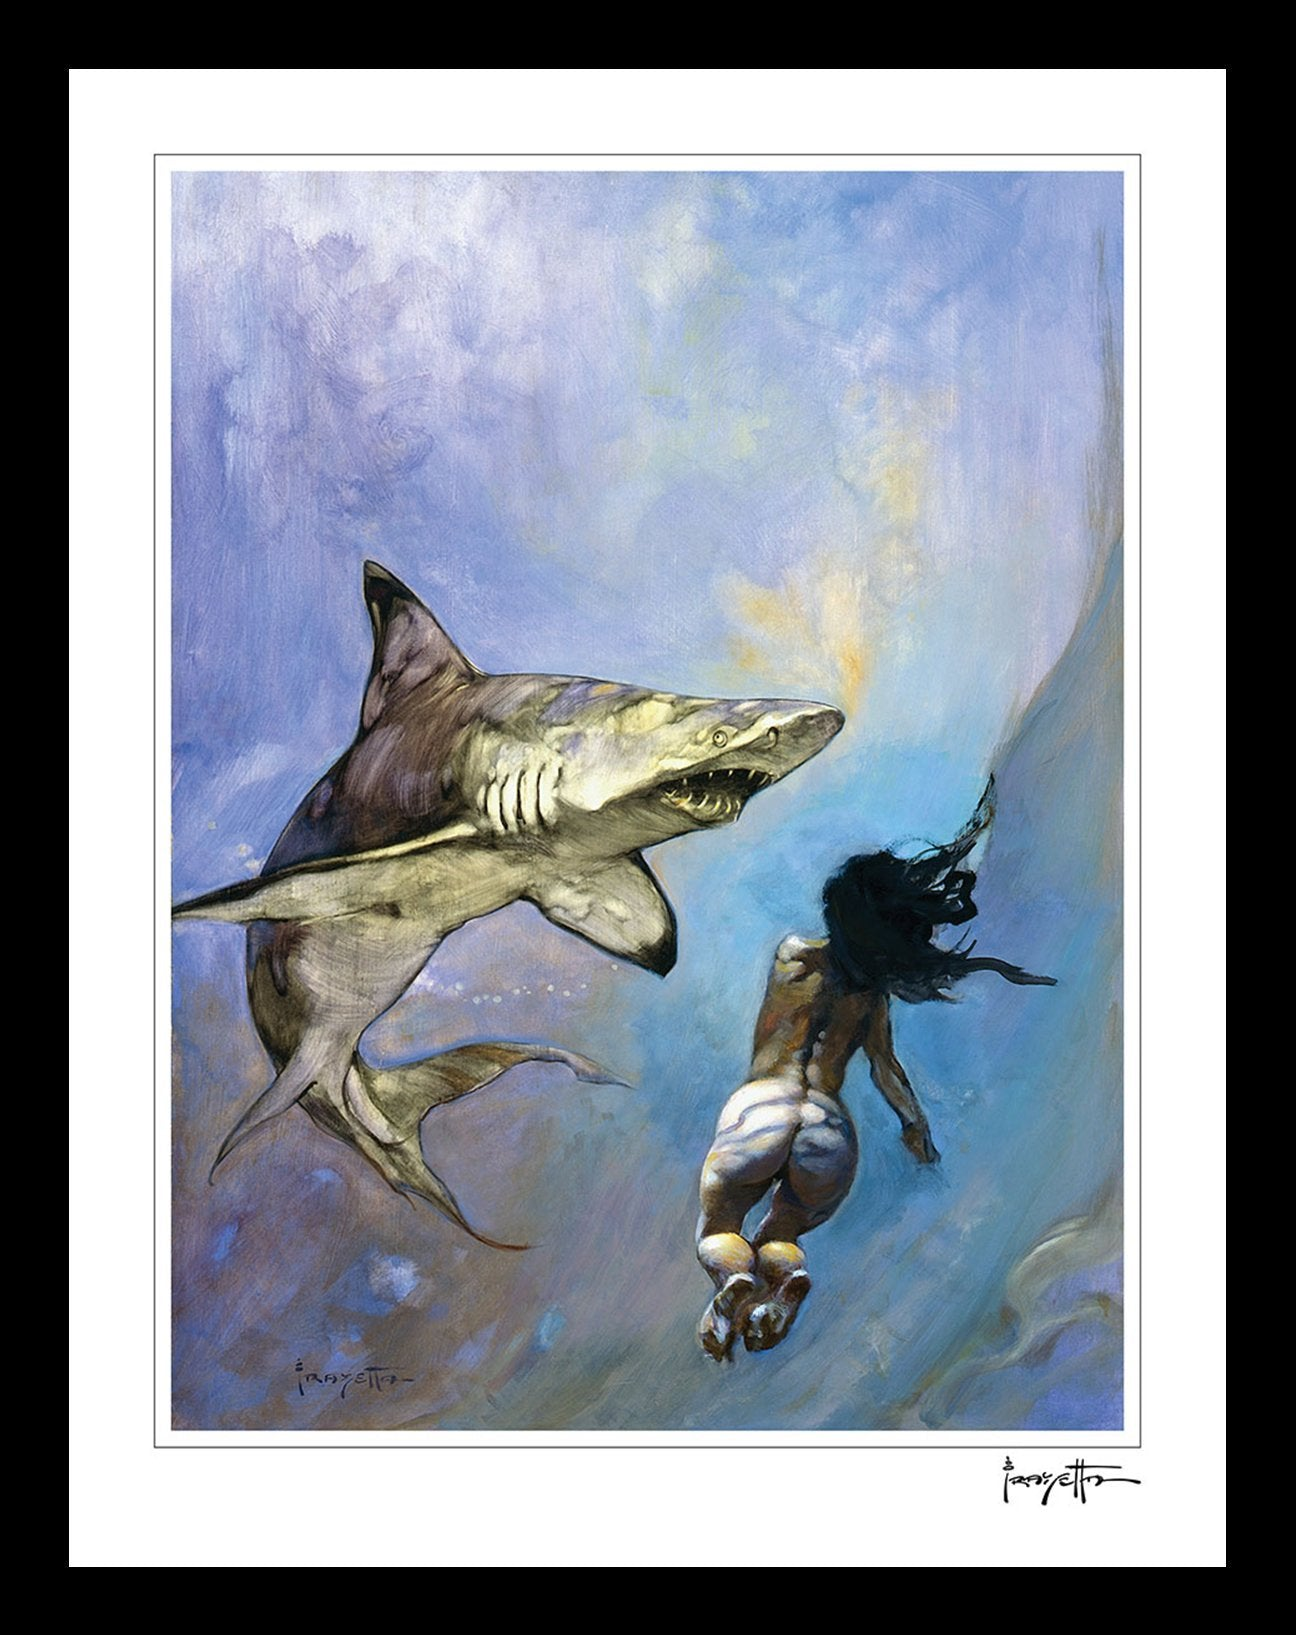 FrazettaGirls Art Print Framed print / Stretched on wooden bar / 18x24 Requiem for a Shark Print